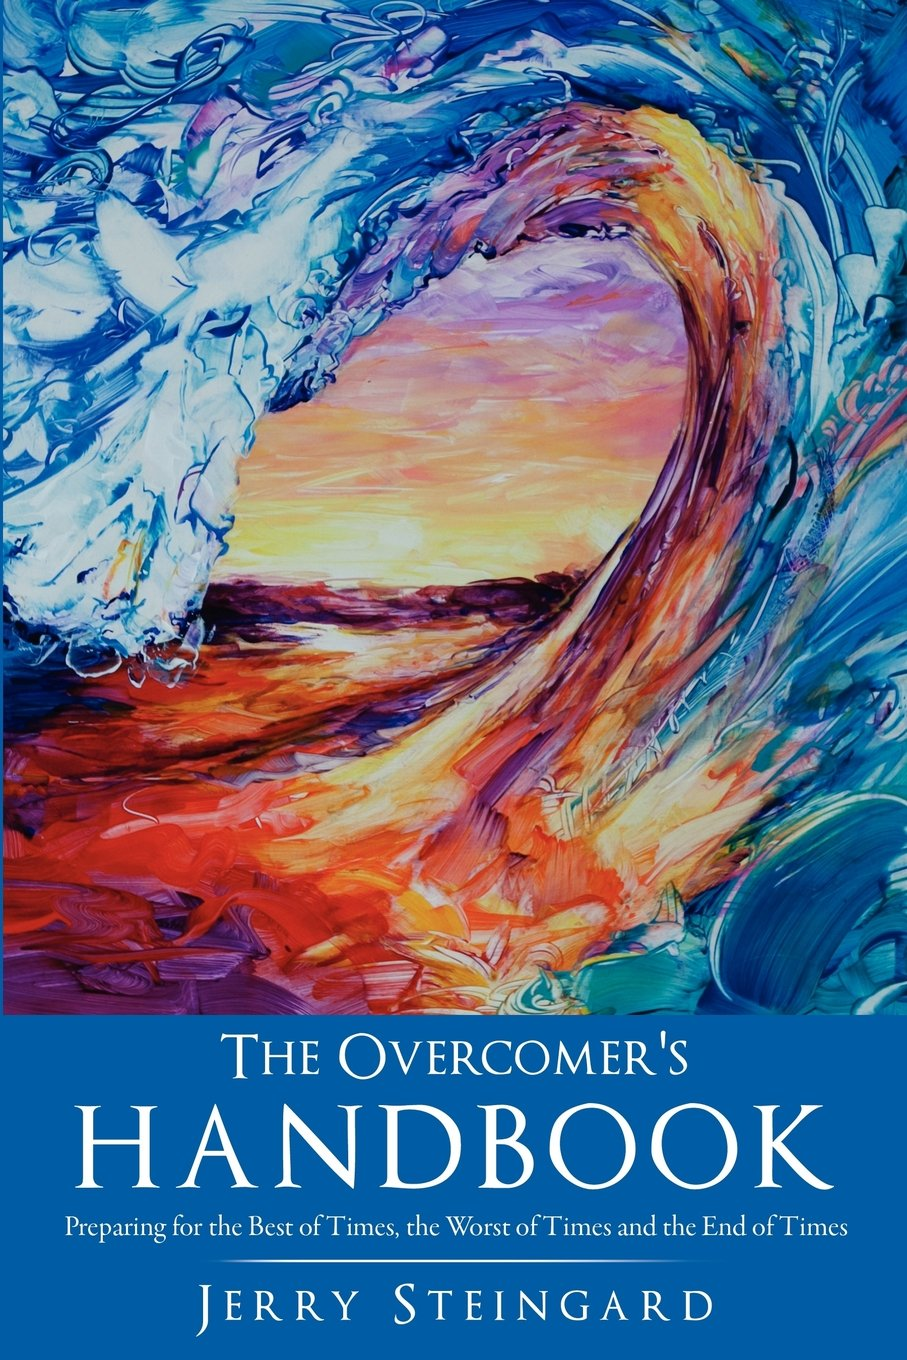 Download The Overcomer's Handbook: Preparing for the Best of Times, the Worst of Times and the End of Times pdf epub